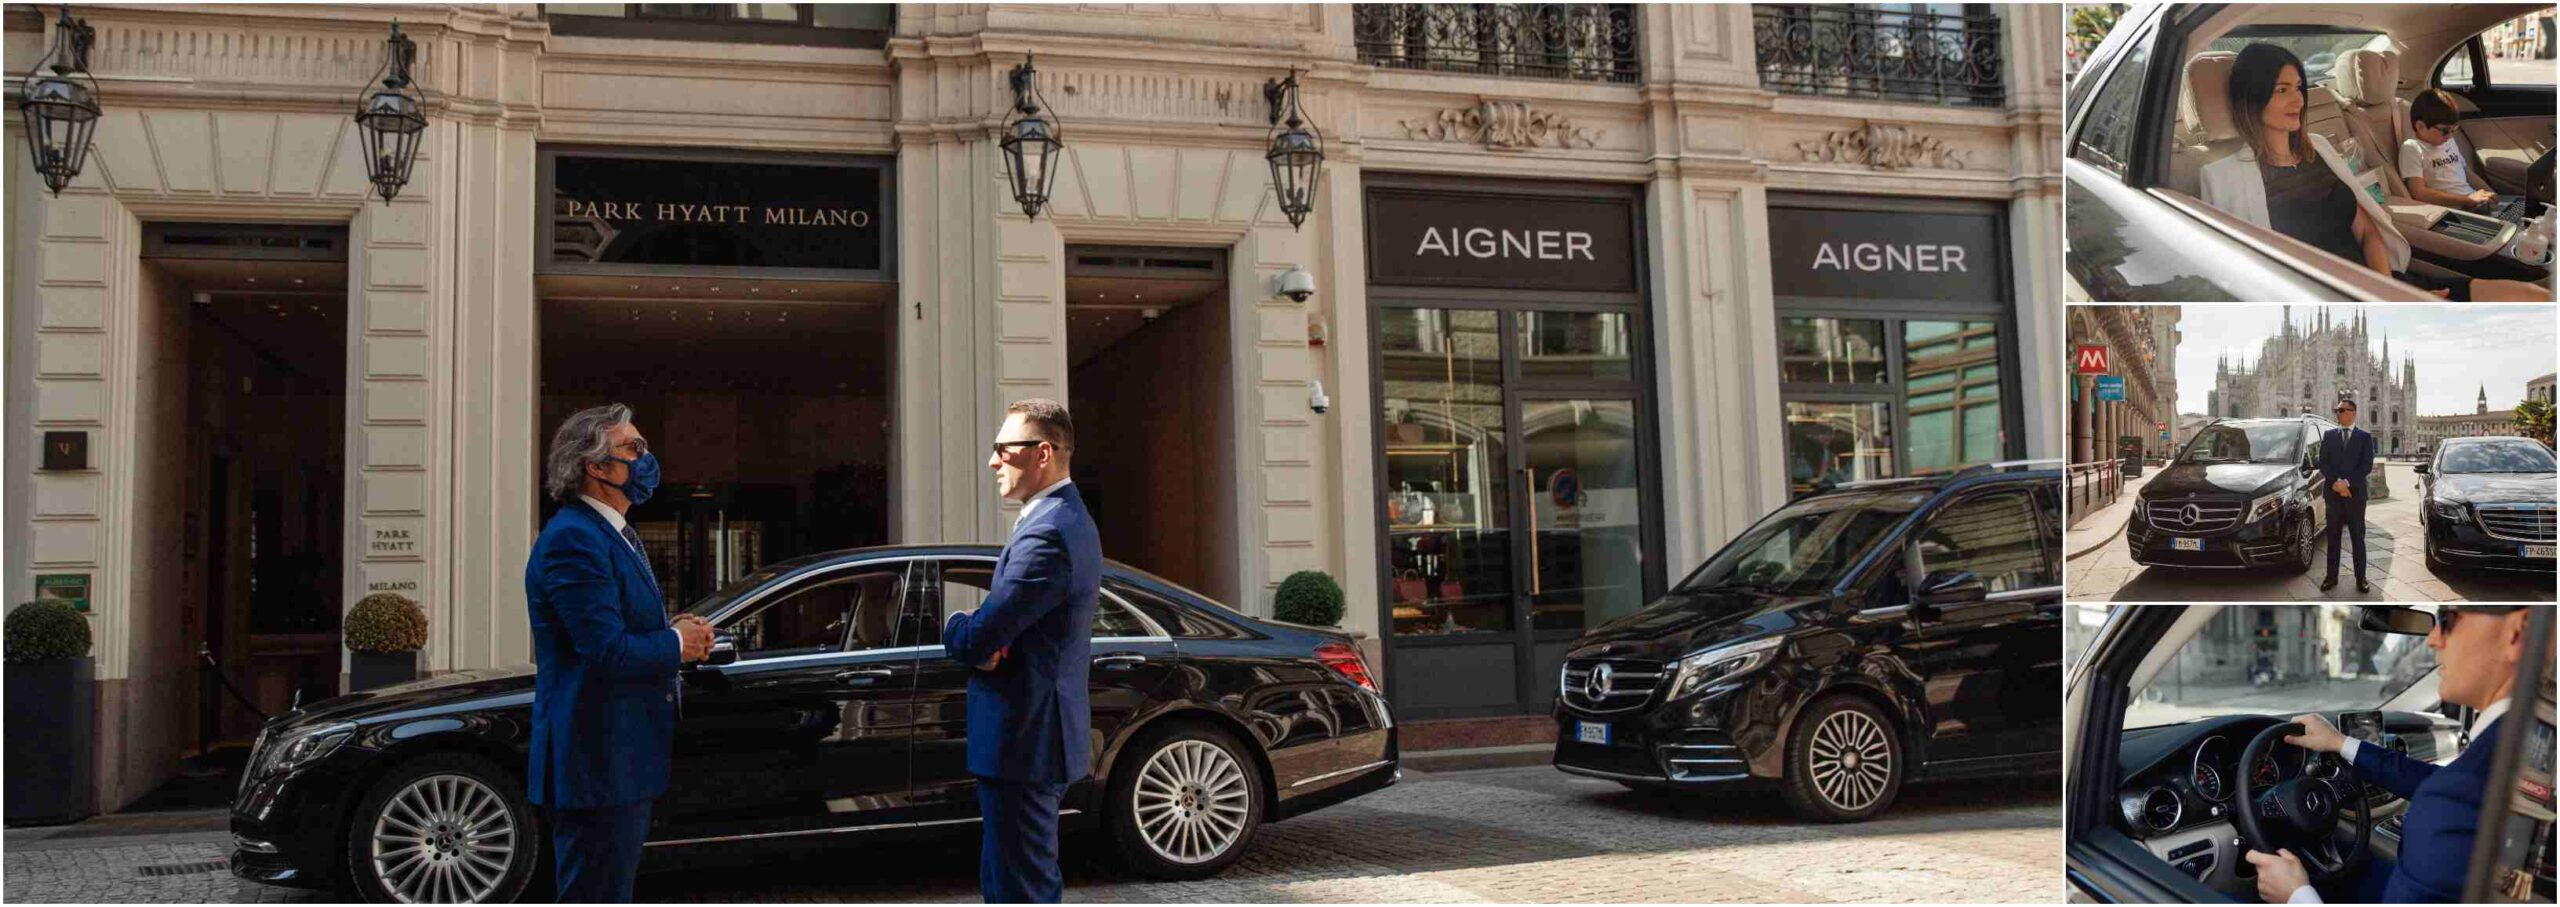 Luxury Car Rental Rome With Driver - Chauffeur Services in Rome